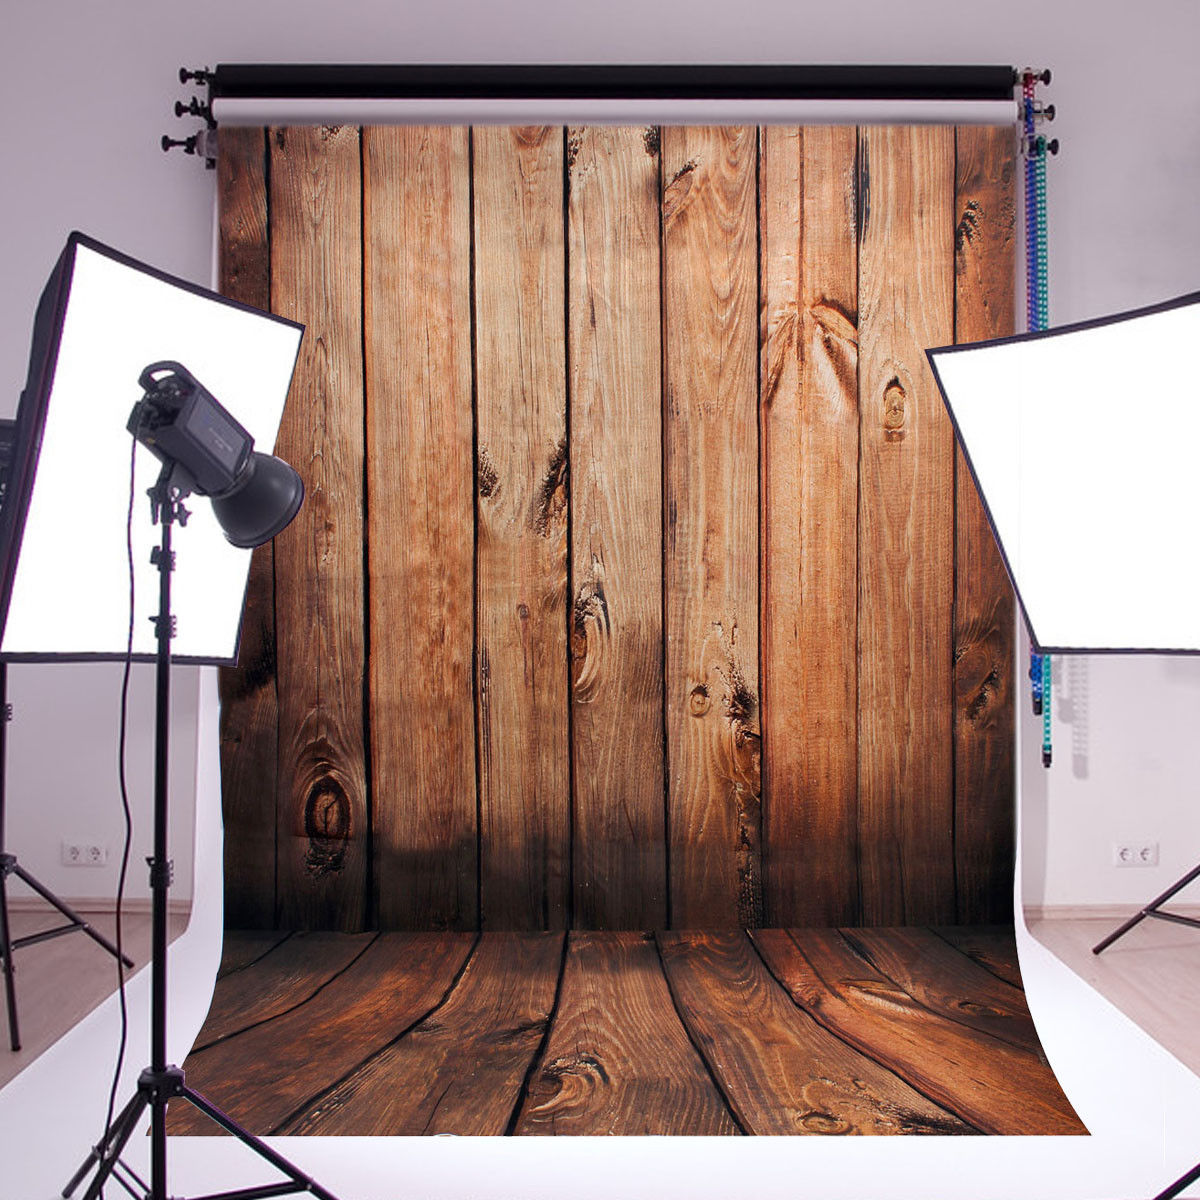 Photography Backdrops vinyl background for photo studio vintage wood baby background 2.1*1.5m Hot Sale easter day basket branch bunny photo studio background easter photography backdrops page 2